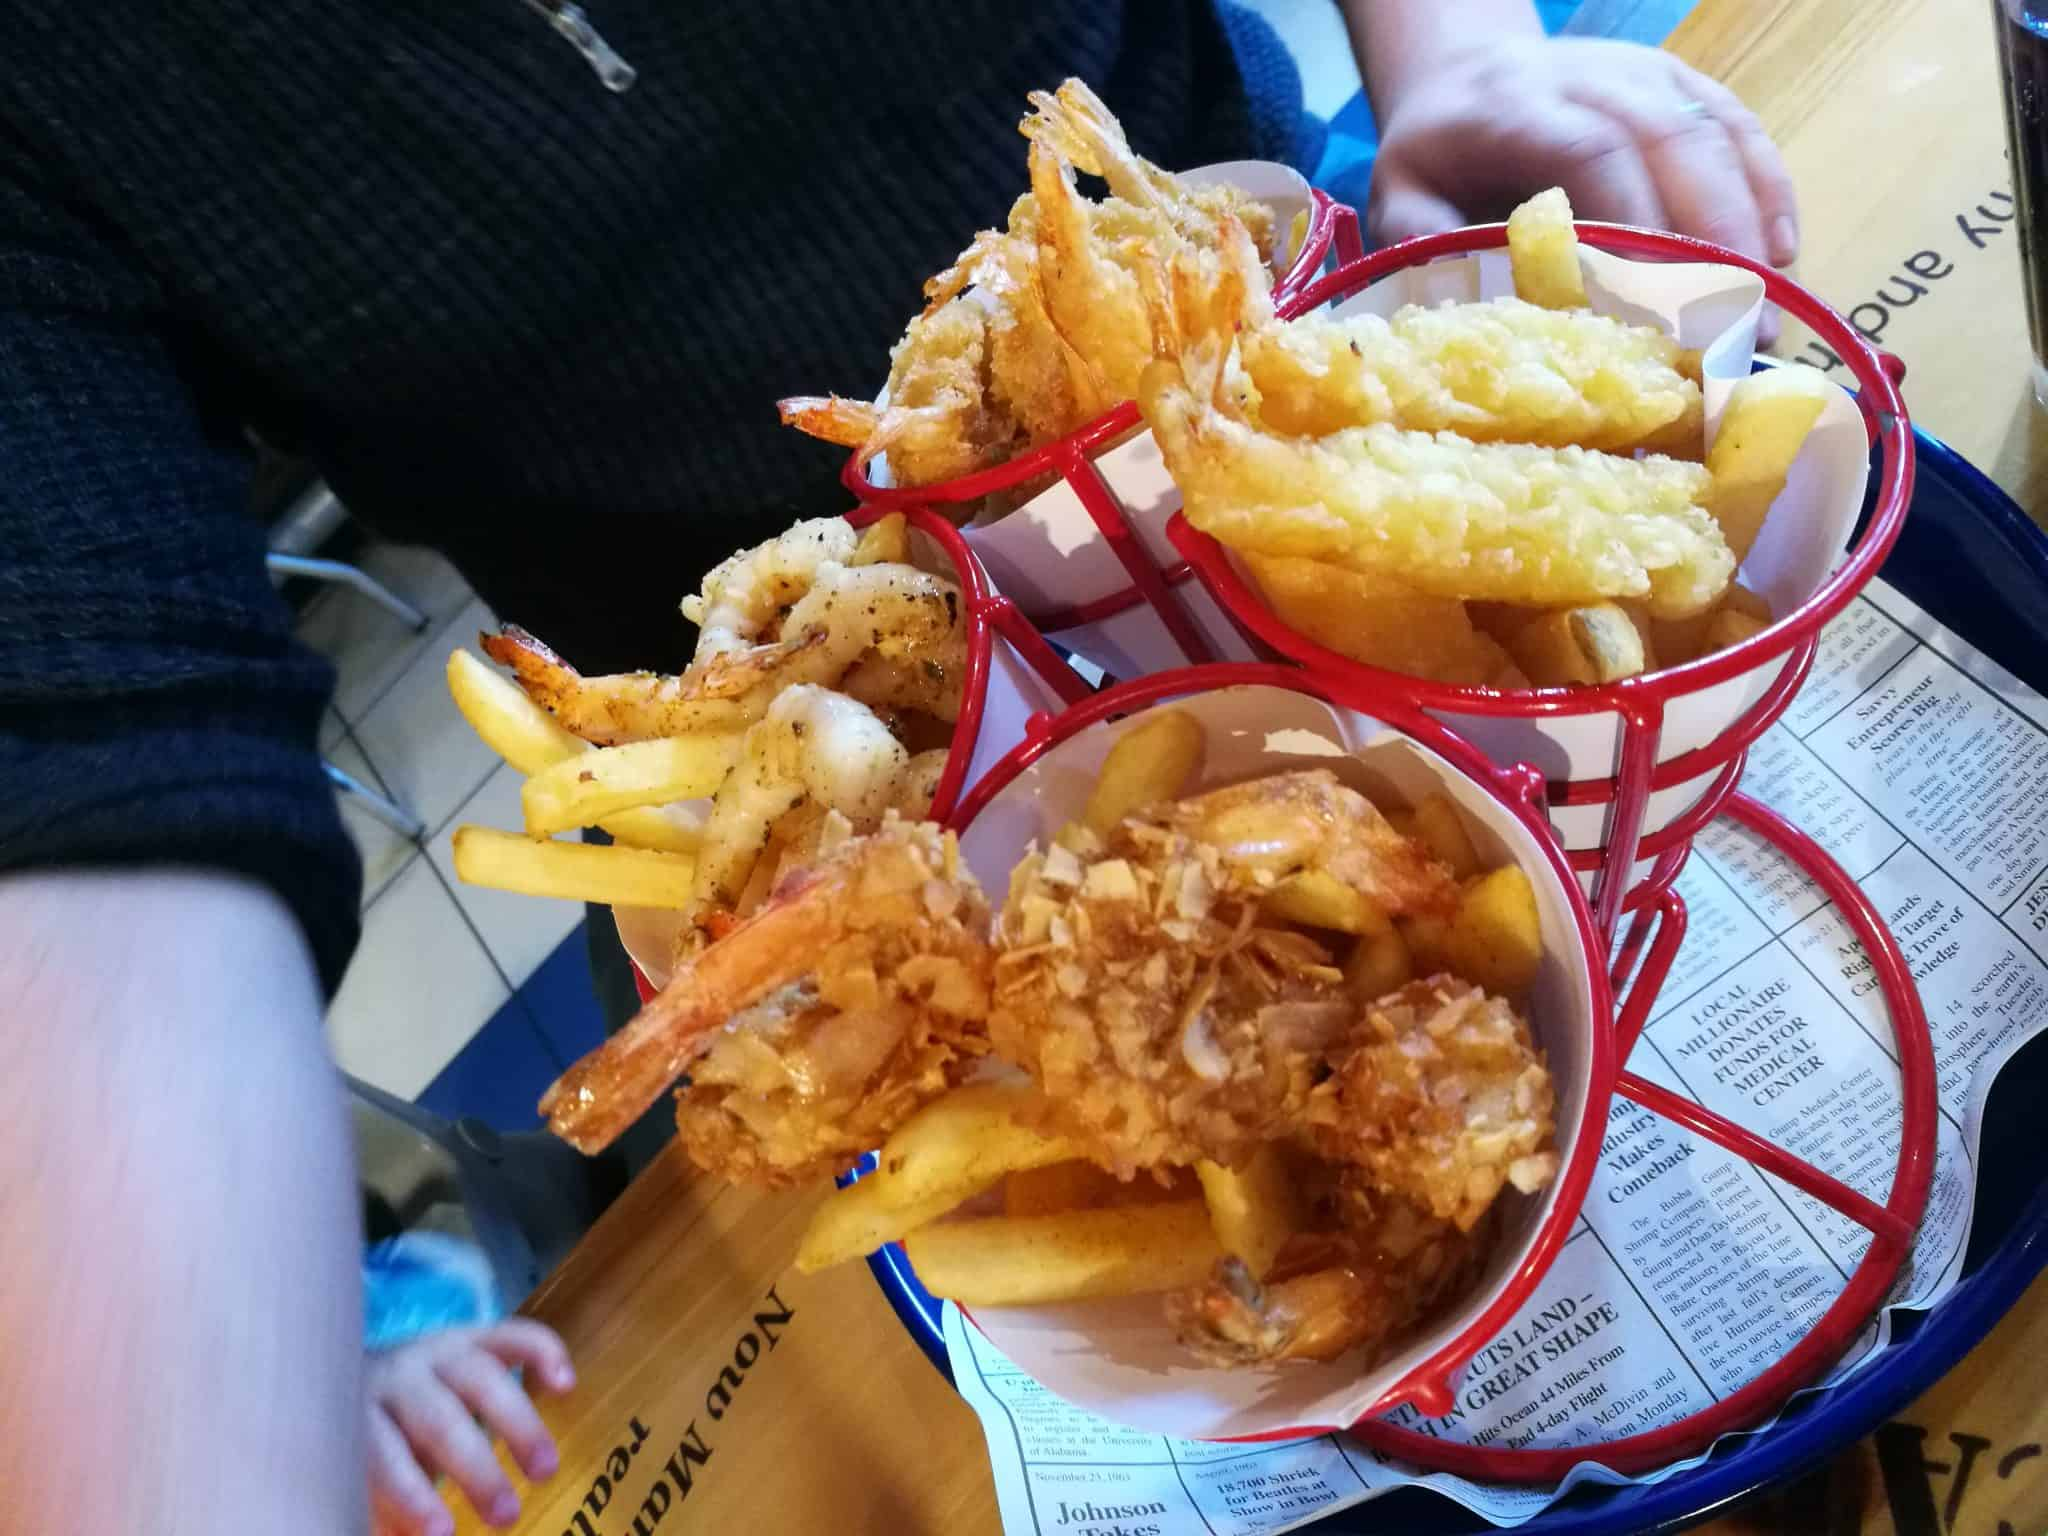 Restaurant Review: Bubba Gump Shrimp